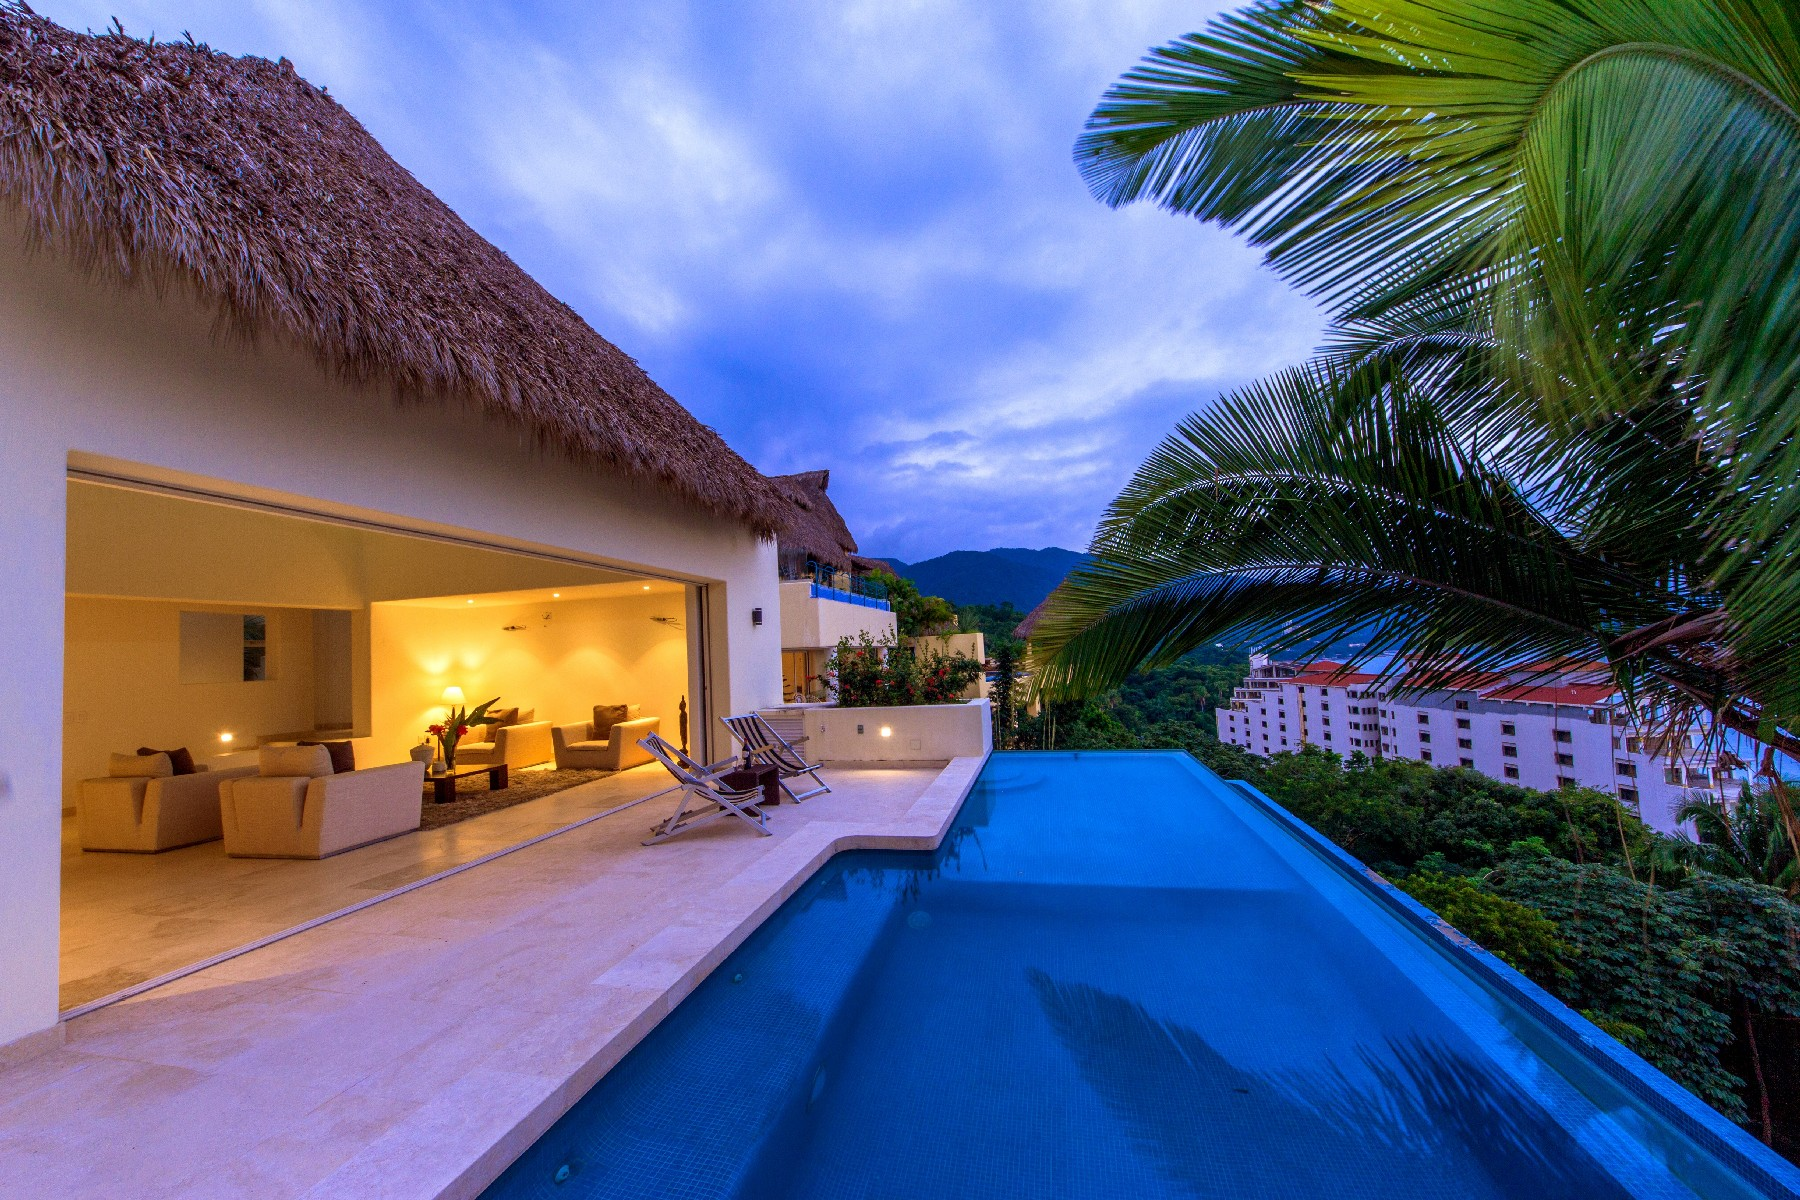 Additional photo for property listing at Casa Romantica Puerto Vallarta, Jalisco México